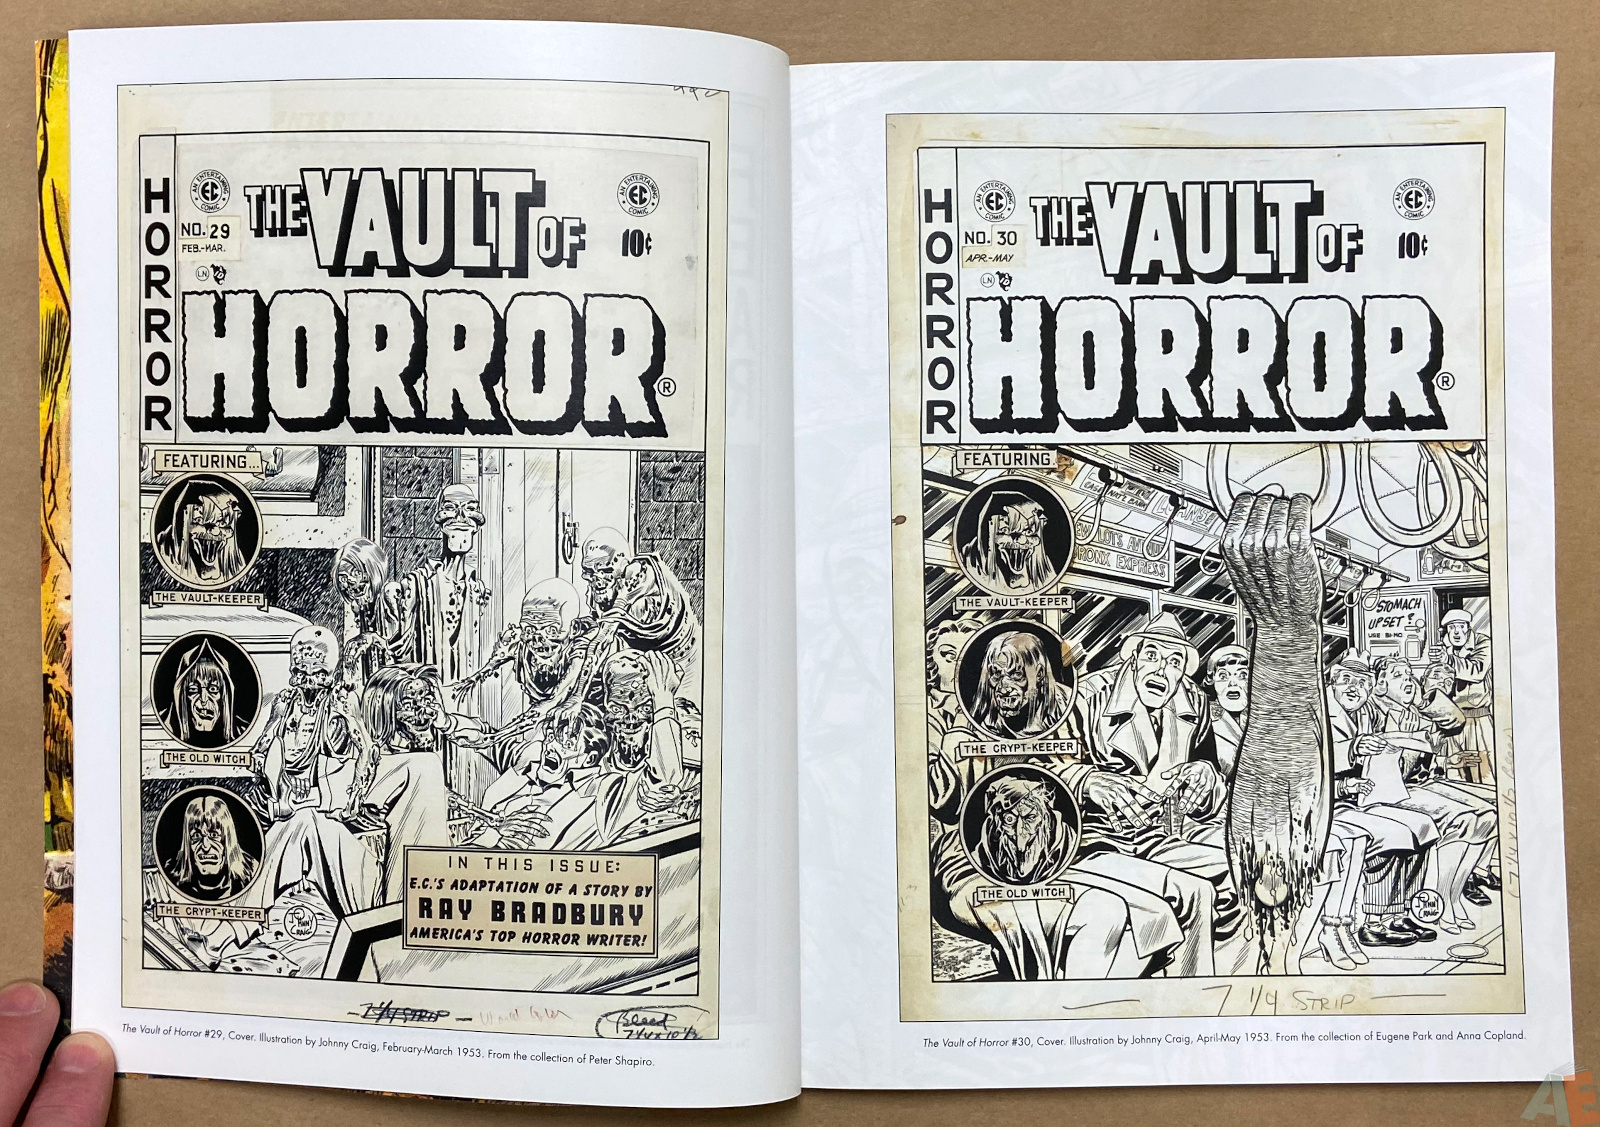 Tales From The Crypt Exhibition Catalog interior 3